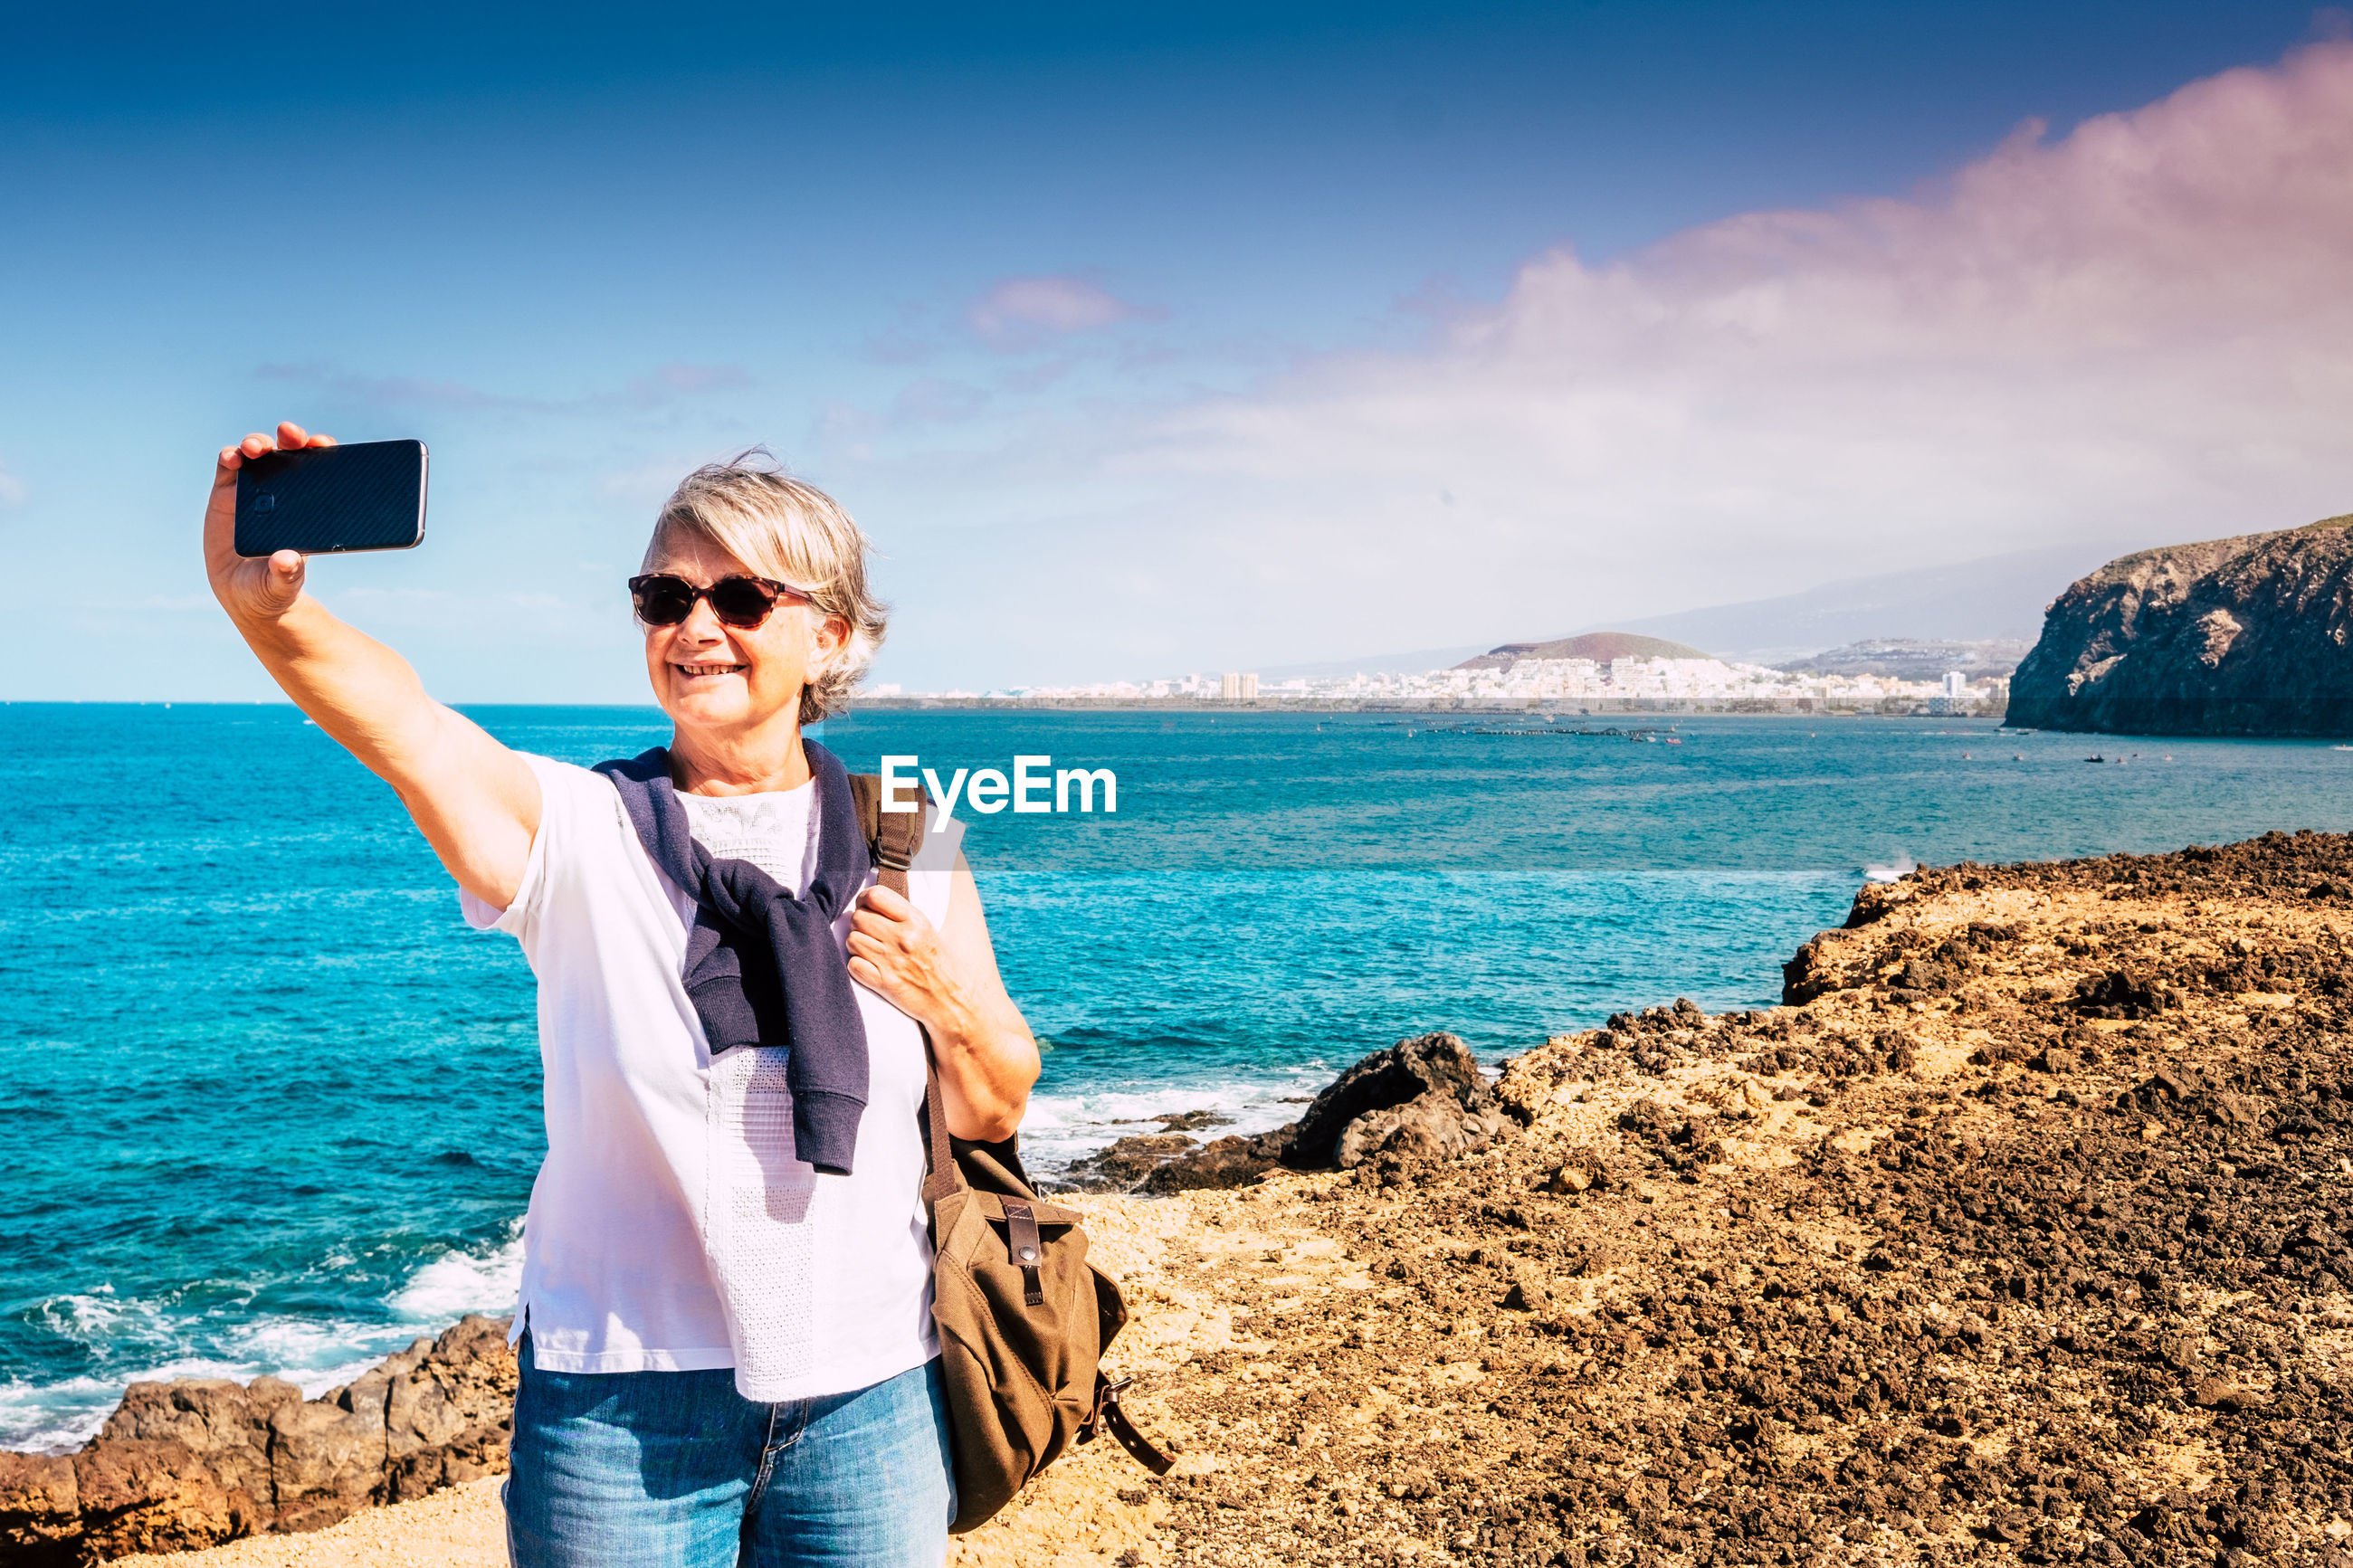 Senior woman taking selfie with smart phone while standing at beach against sky during sunny day